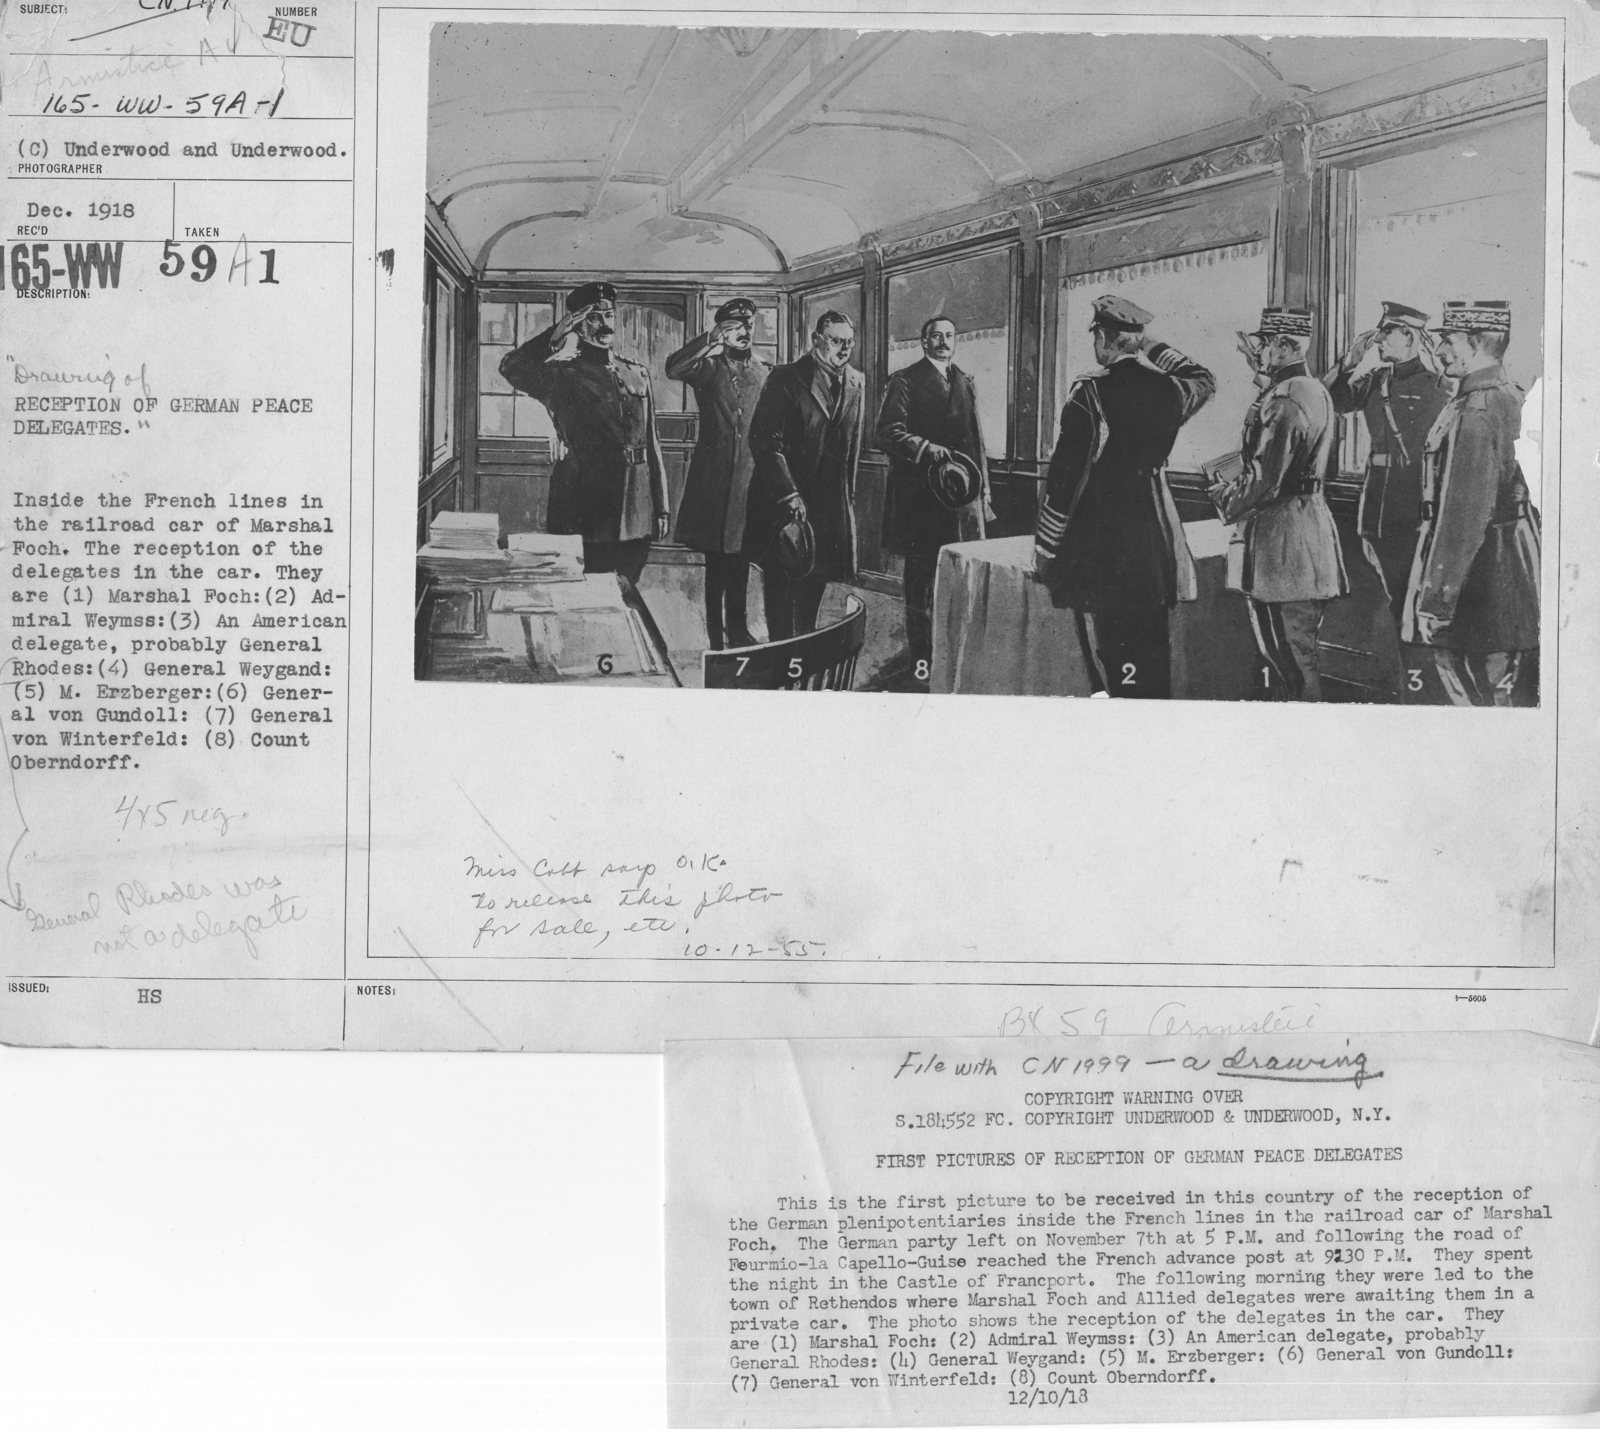 Armistice - Armistice - Drawing of Recption of German Peace Delegates. Inside the French lines in the railroad car of Marshal Foch. The reception of the delgates in the car. They are (1) Marshal Foch: (2) Admiral Weymiss: (3) An American delegate, probably General Rhodes: (4) General Weygand: (5) M. Erzberger: (6) Gernal von Gundoll: (7) Gernal von Winterfield: (8) Count Oberndorff